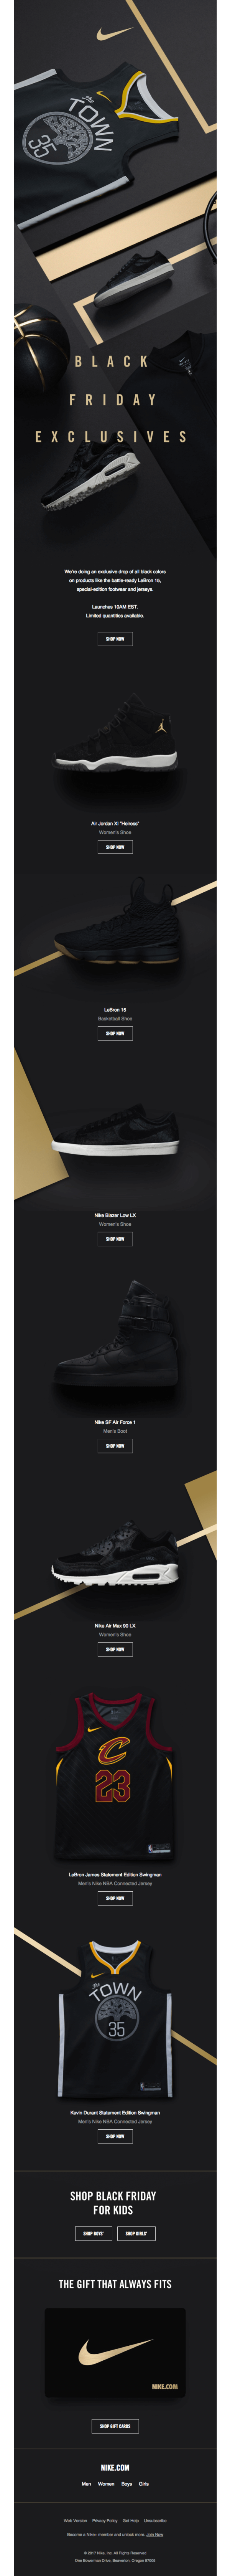 nike black friday exclusive